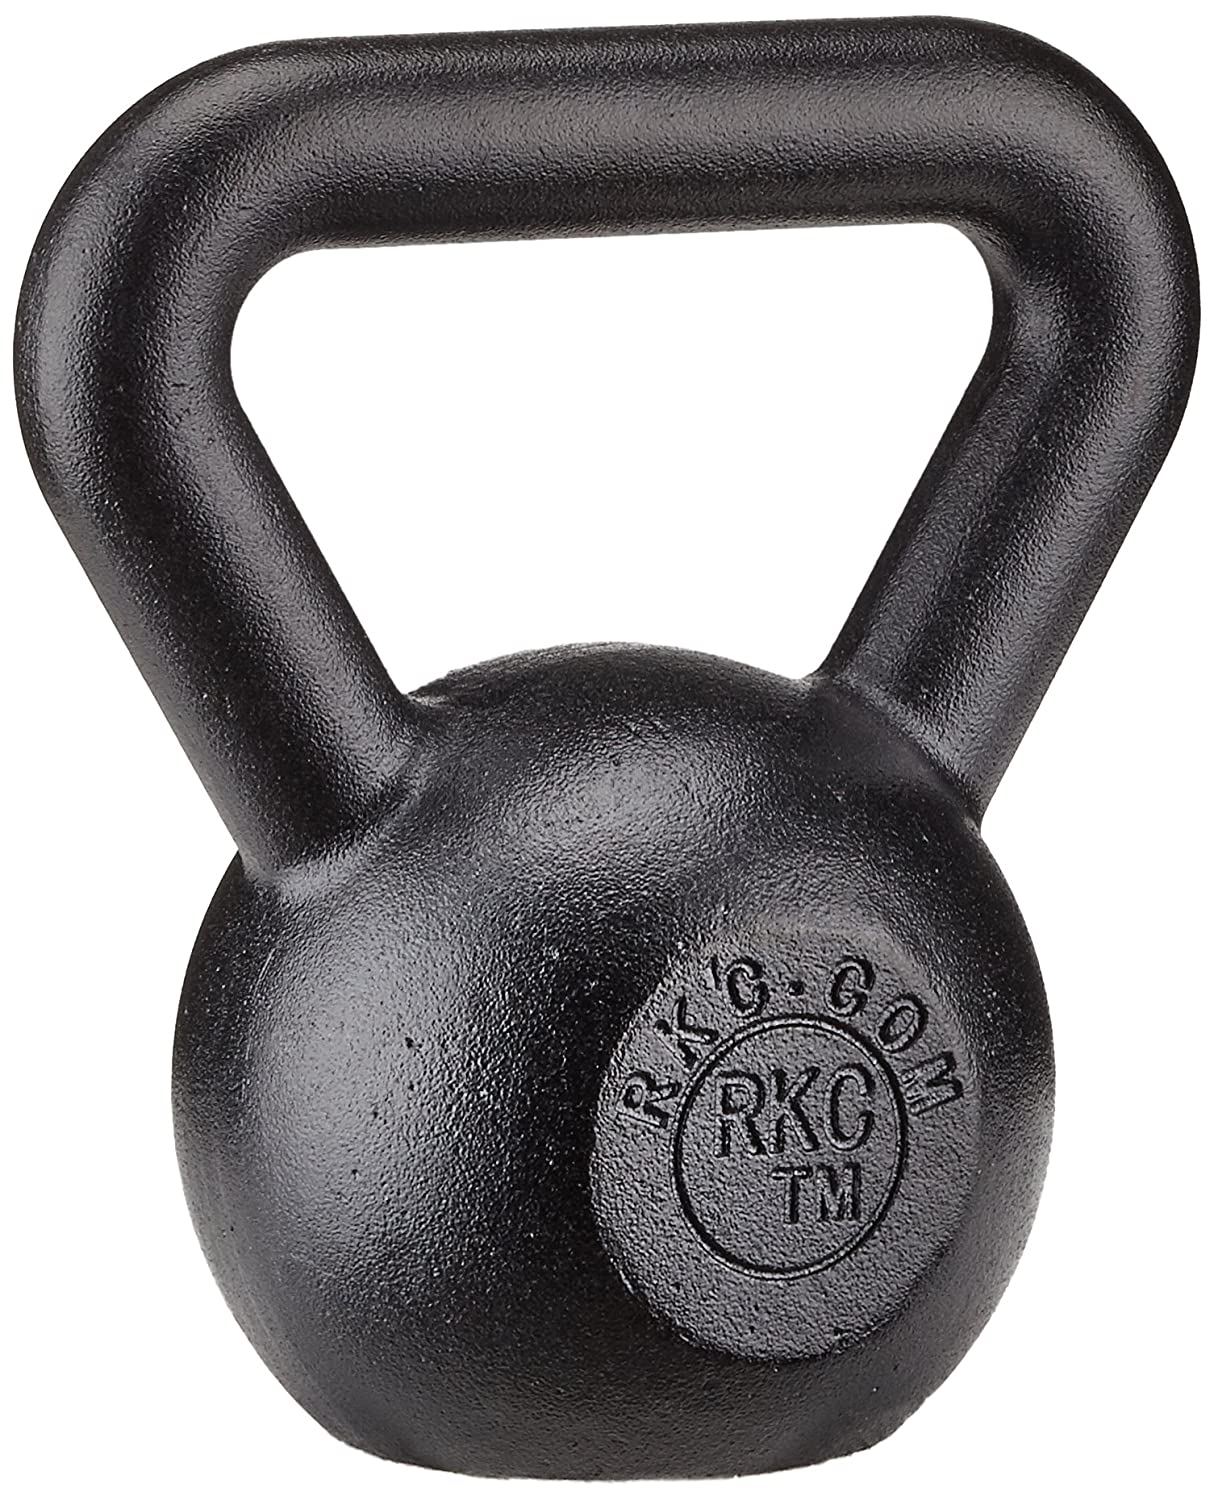 8kg Dragon Door Military Grade RKC Kettlebell